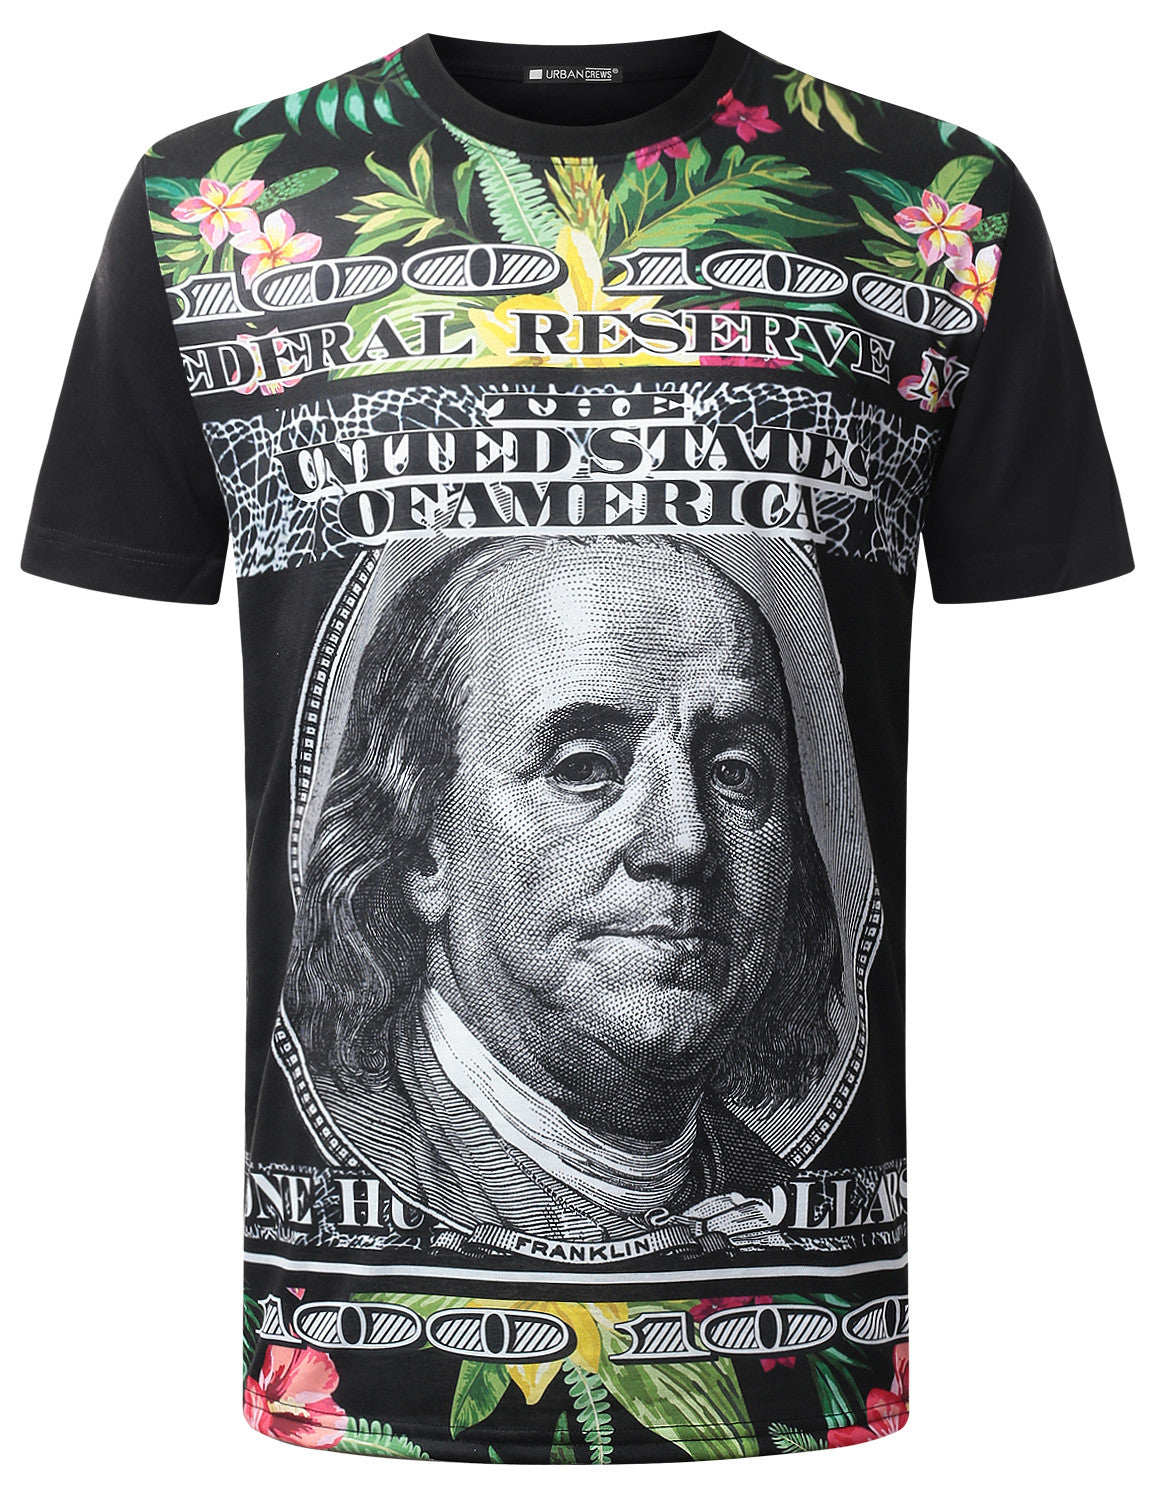 BLACK Floral US Bills Crewneck Tshirt  - URBANCREWS